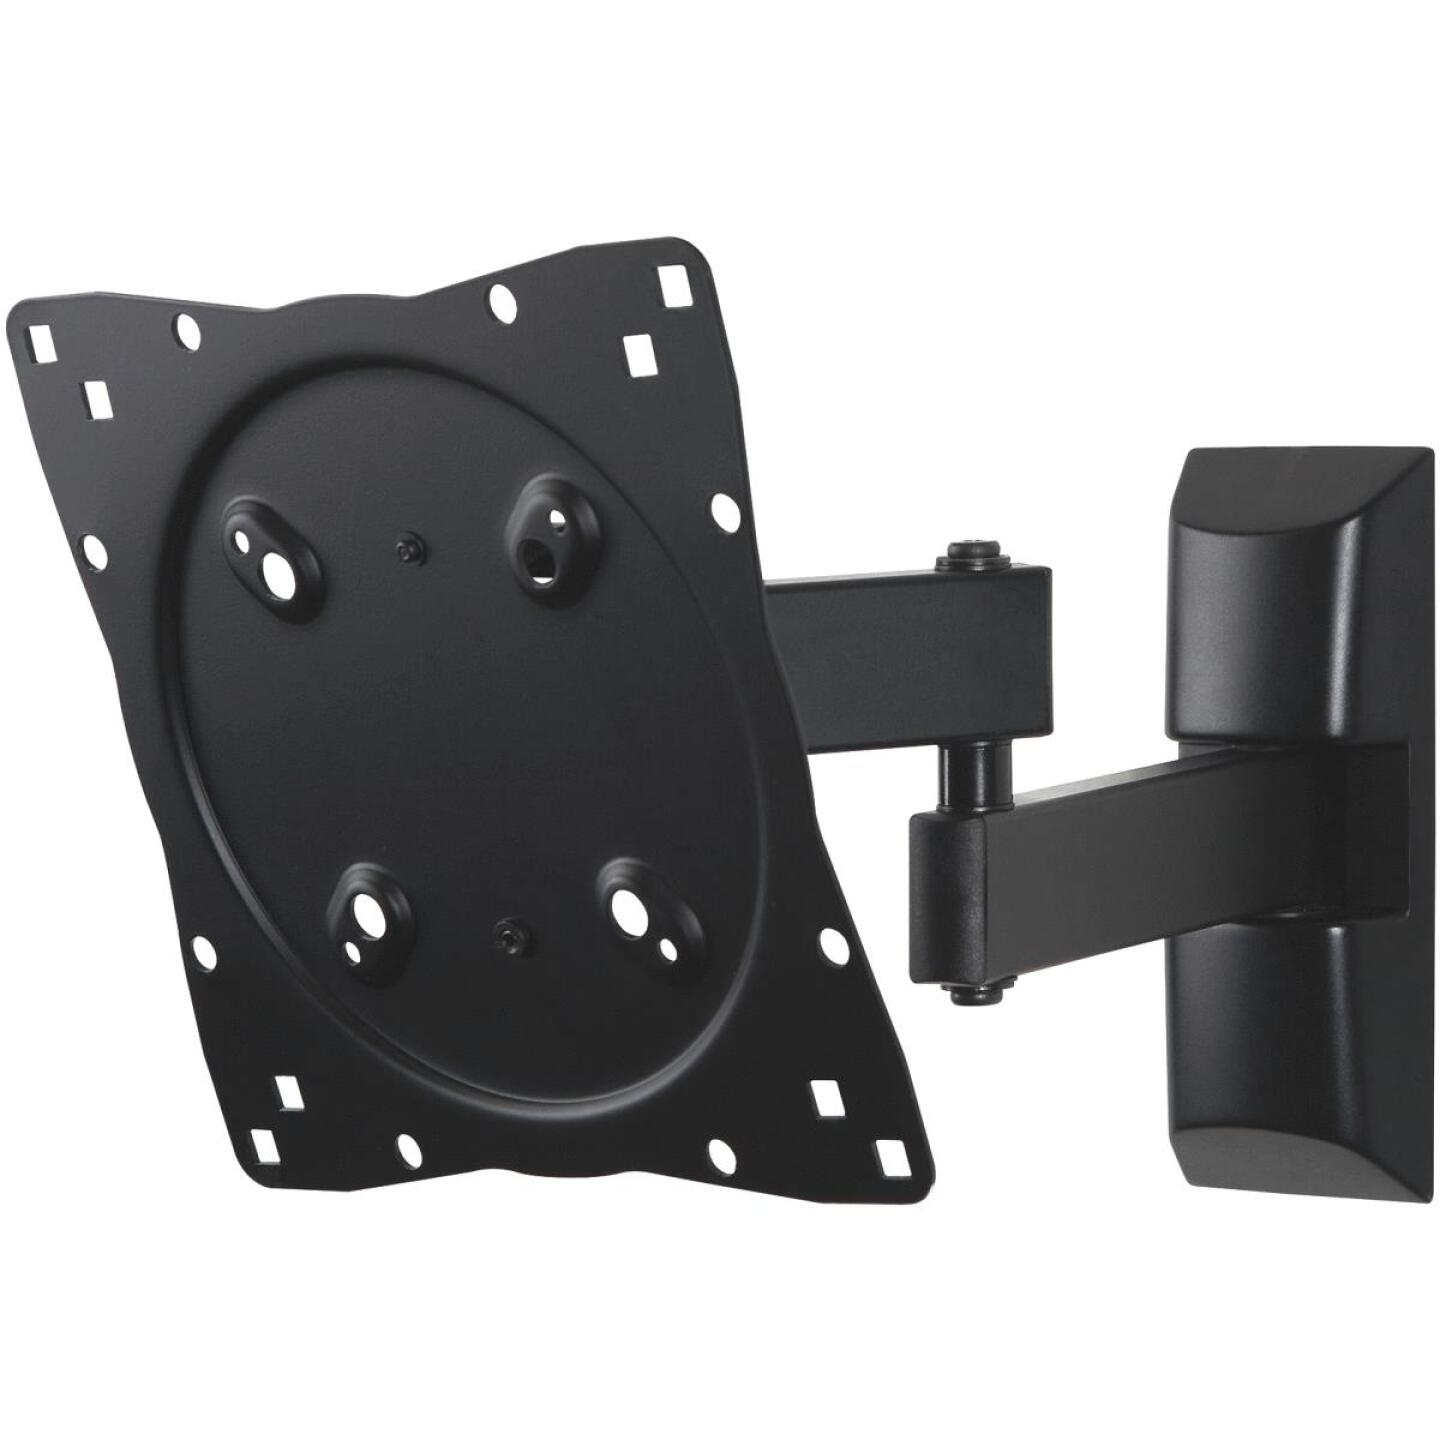 Peerless 22 In. To 40 In. Full Motion TV Wall Mount Image 1